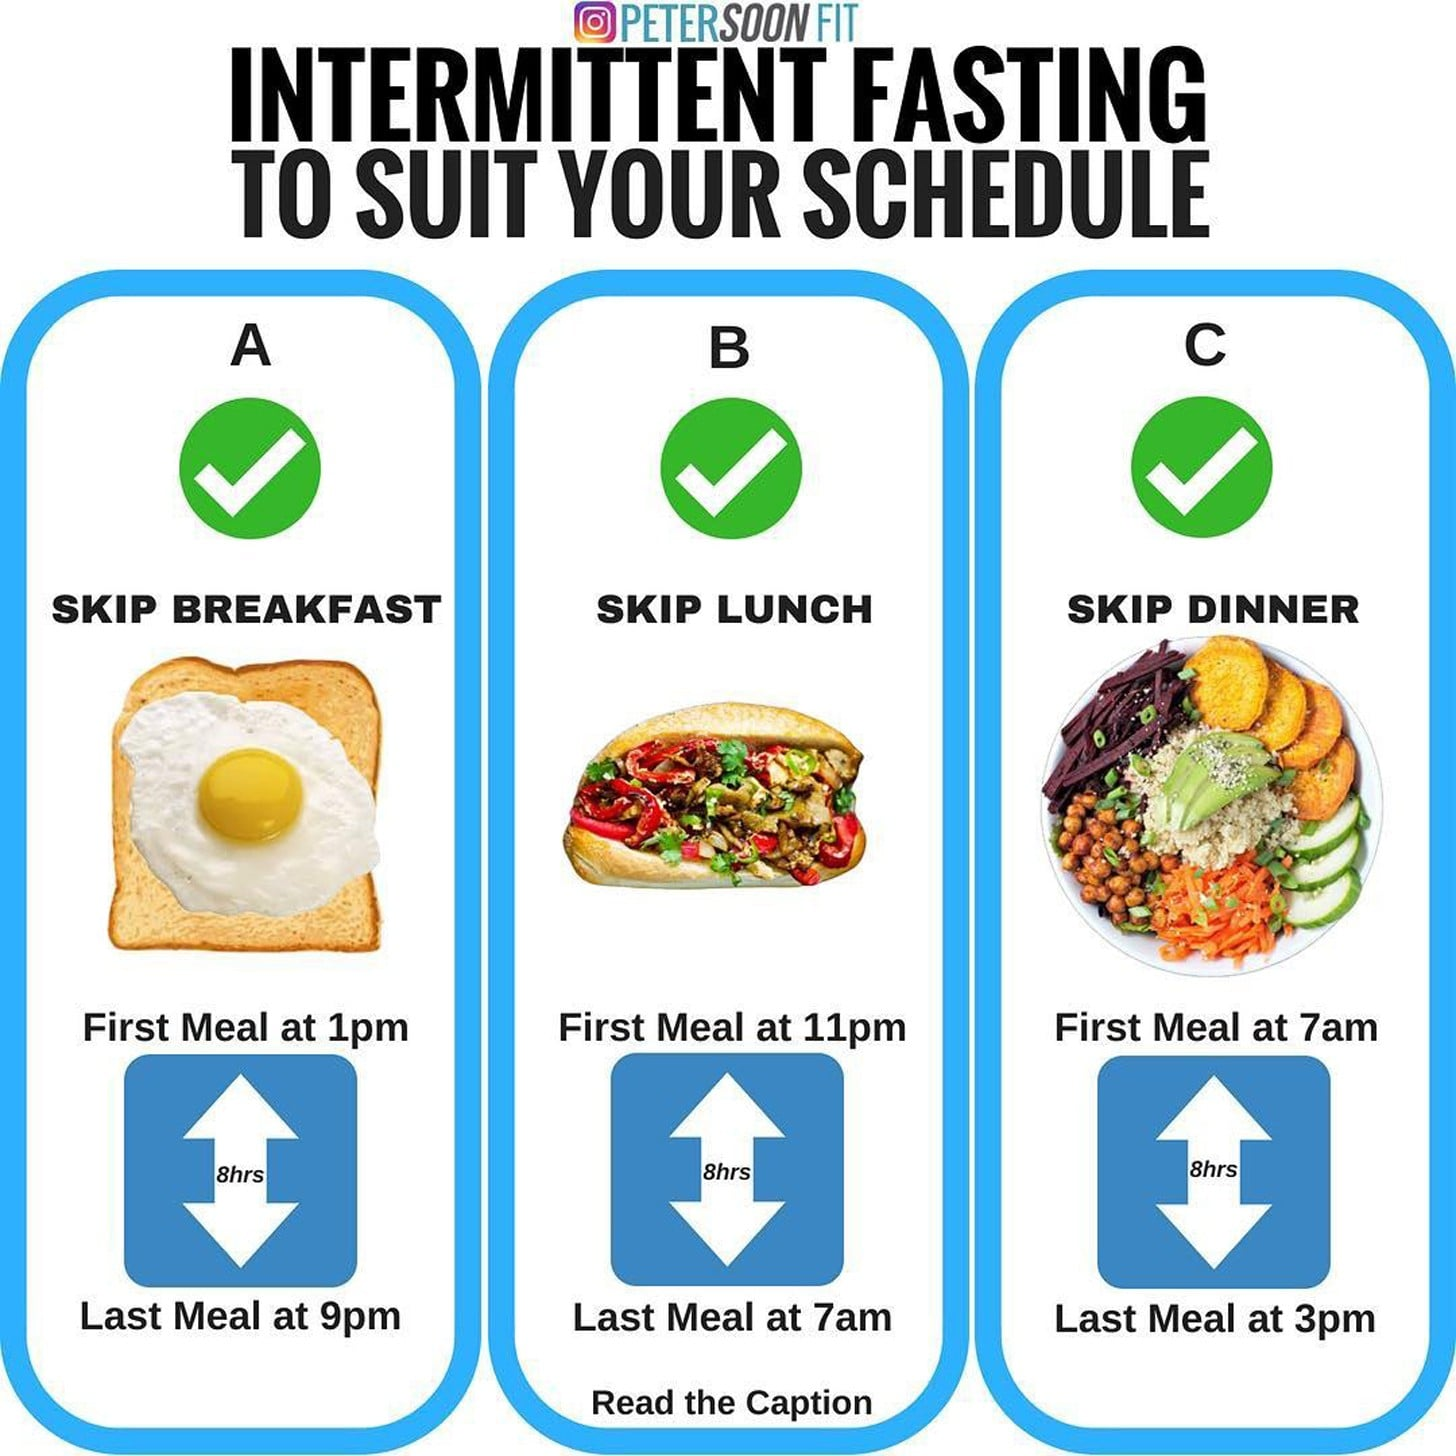 Recipes of a fasting table